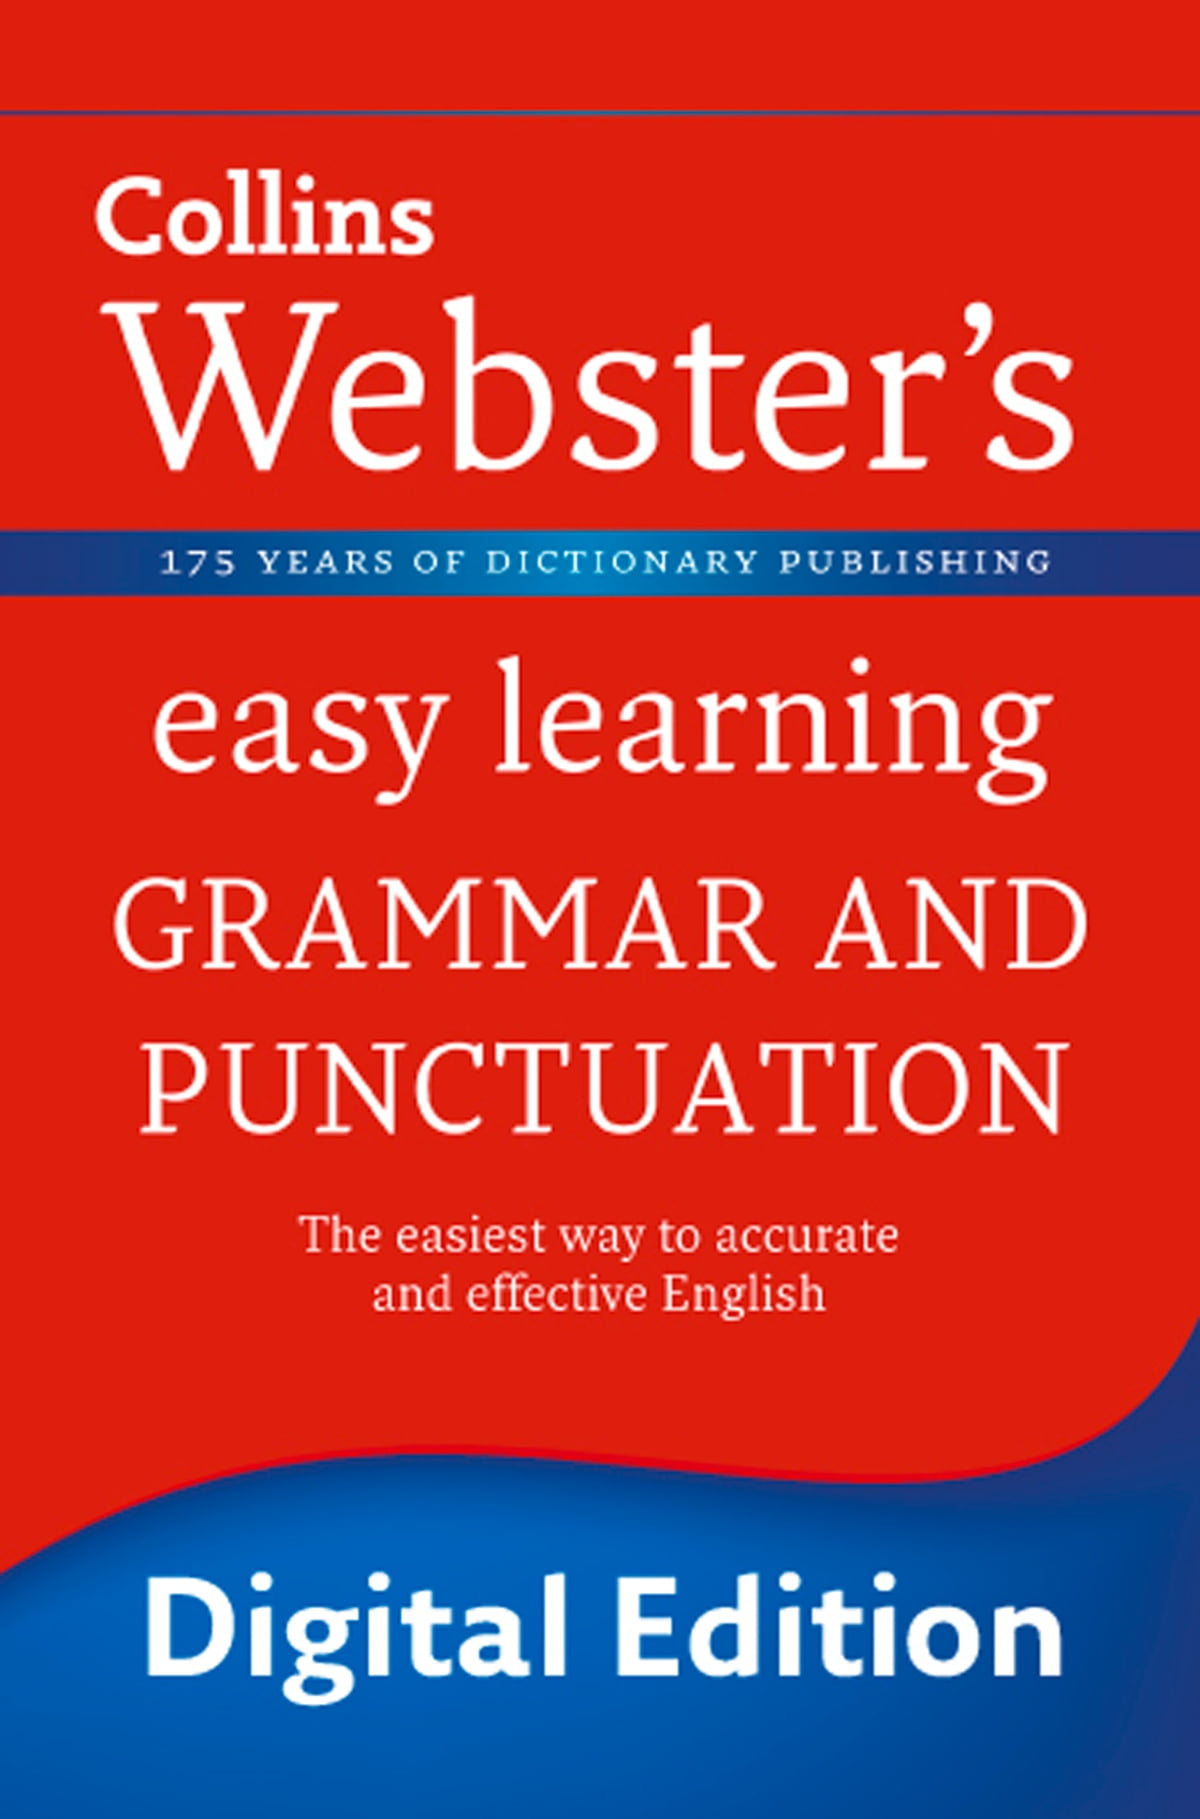 Grammar and Punctuation (Collins Webster's Easy Learning) eBook by Collins  - 9780007444663   Rakuten Kobo